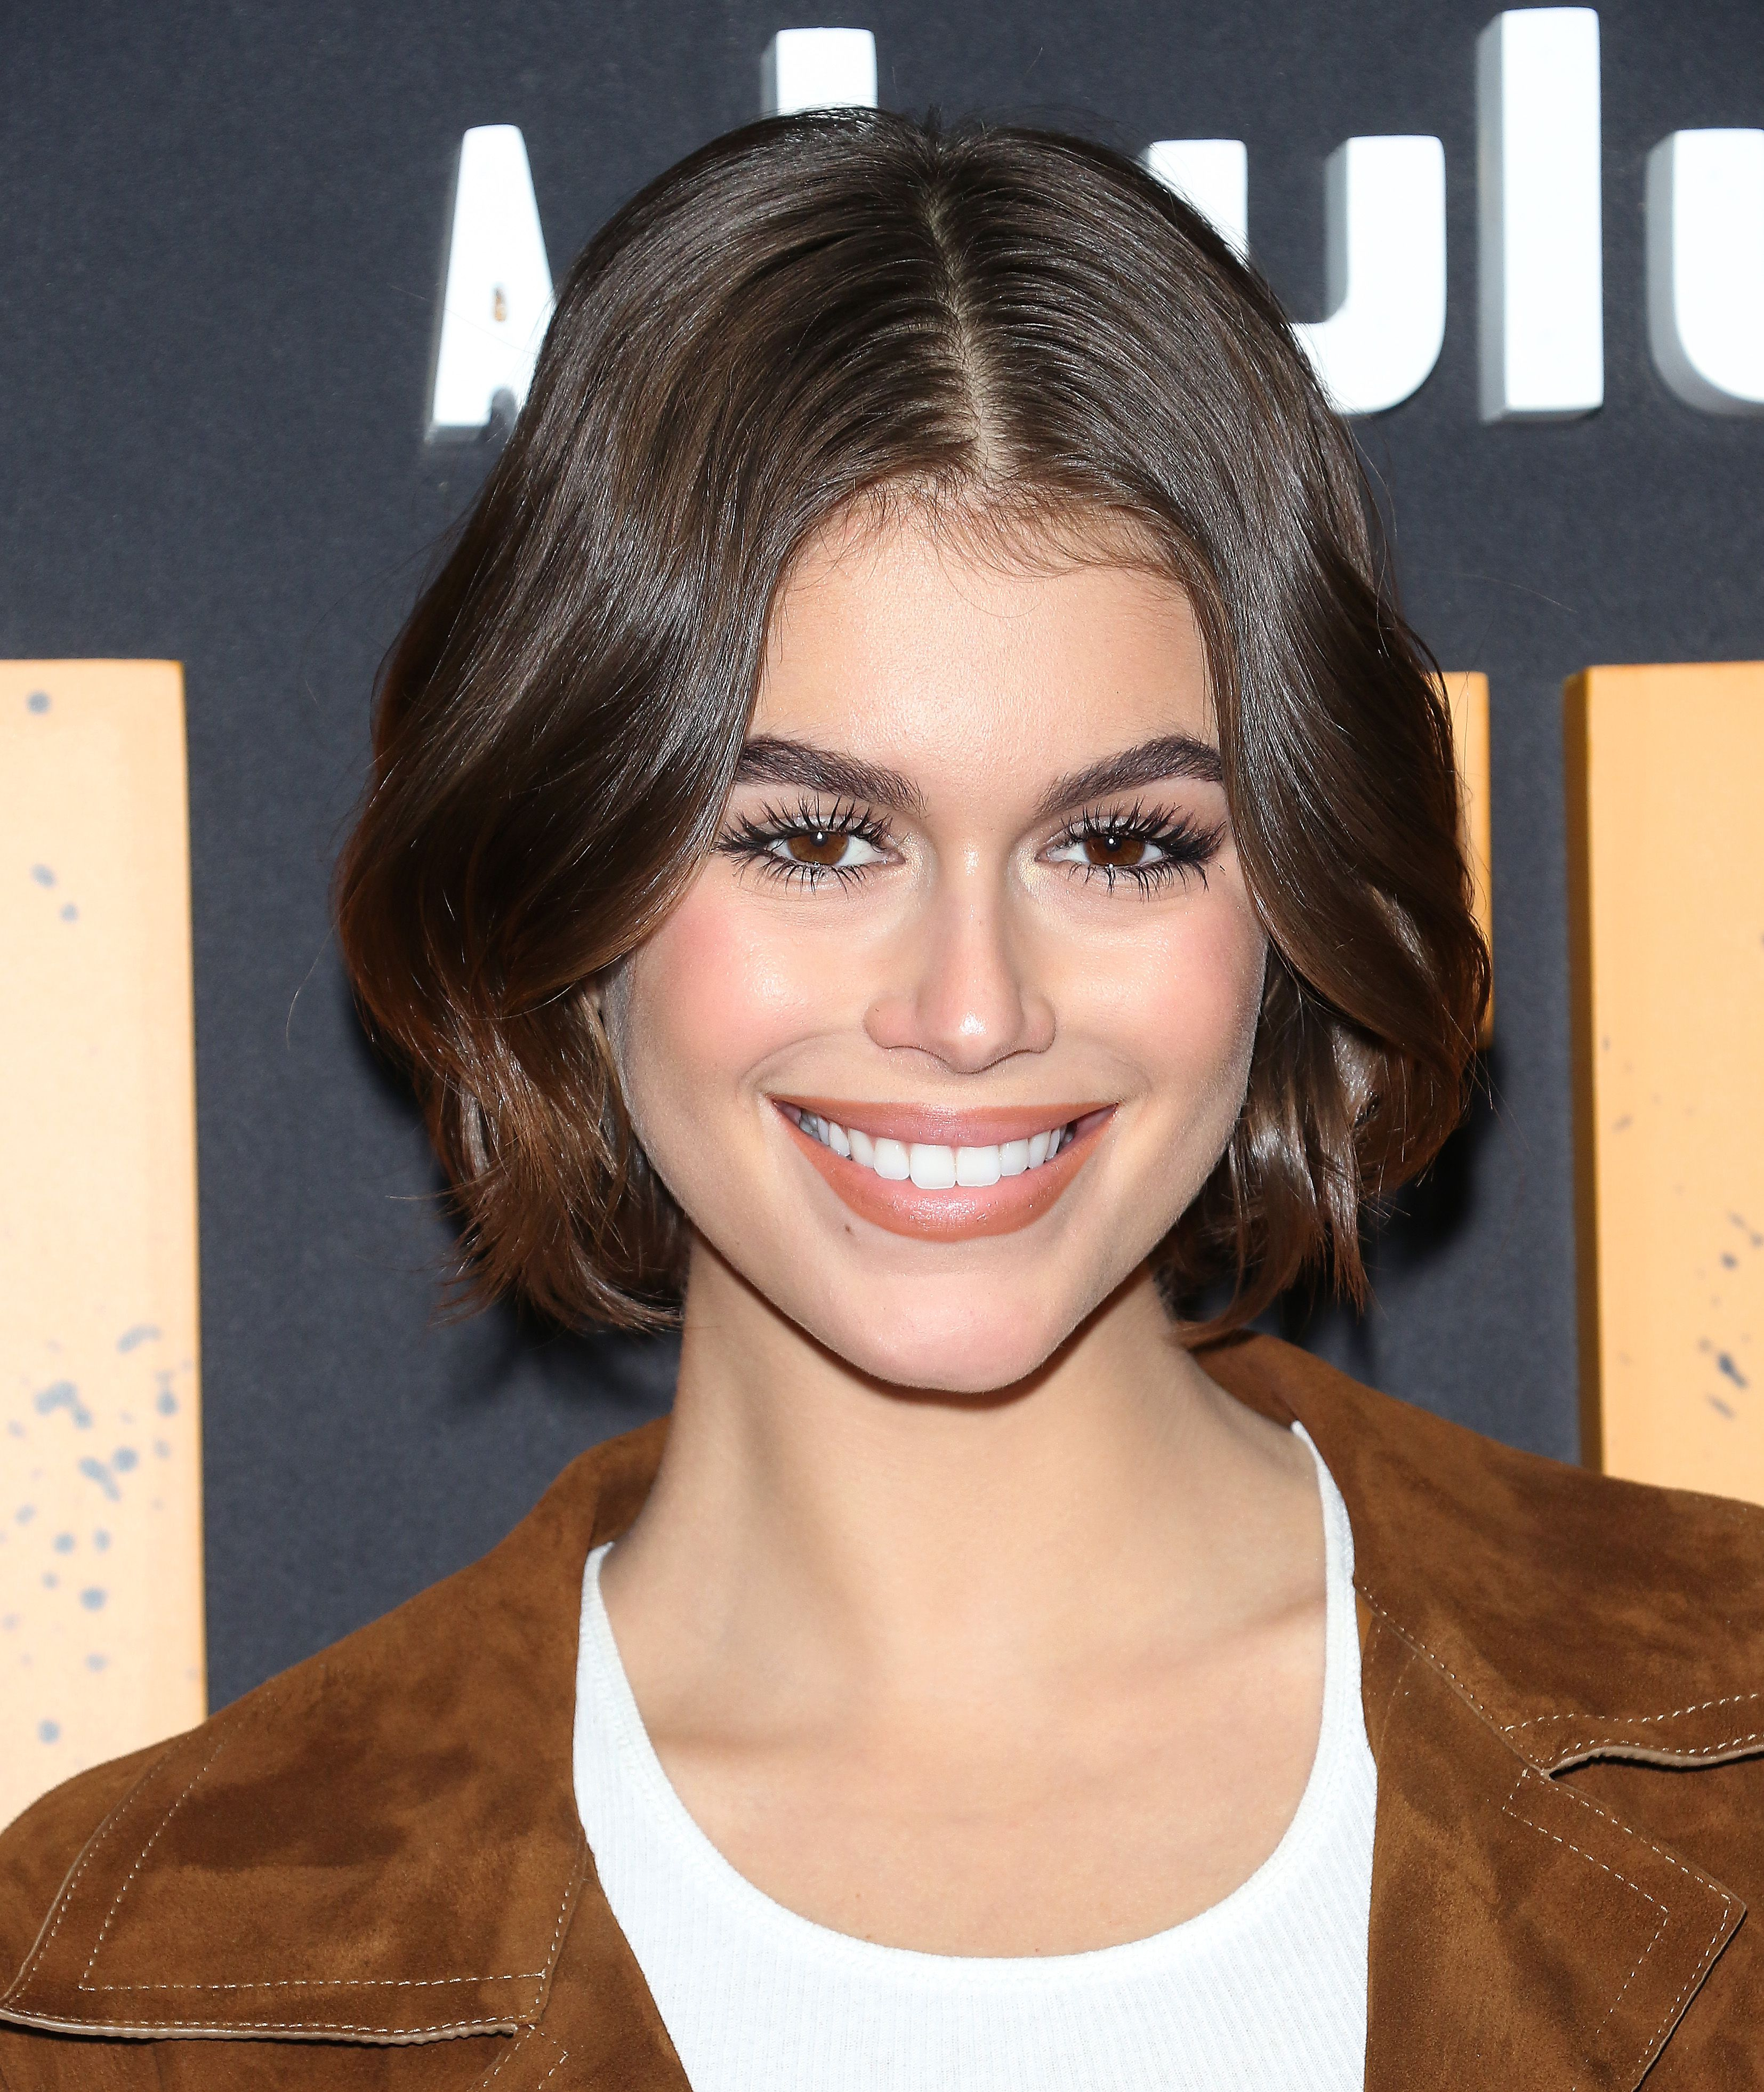 The 10 Best Short Haircuts for Thick Hair